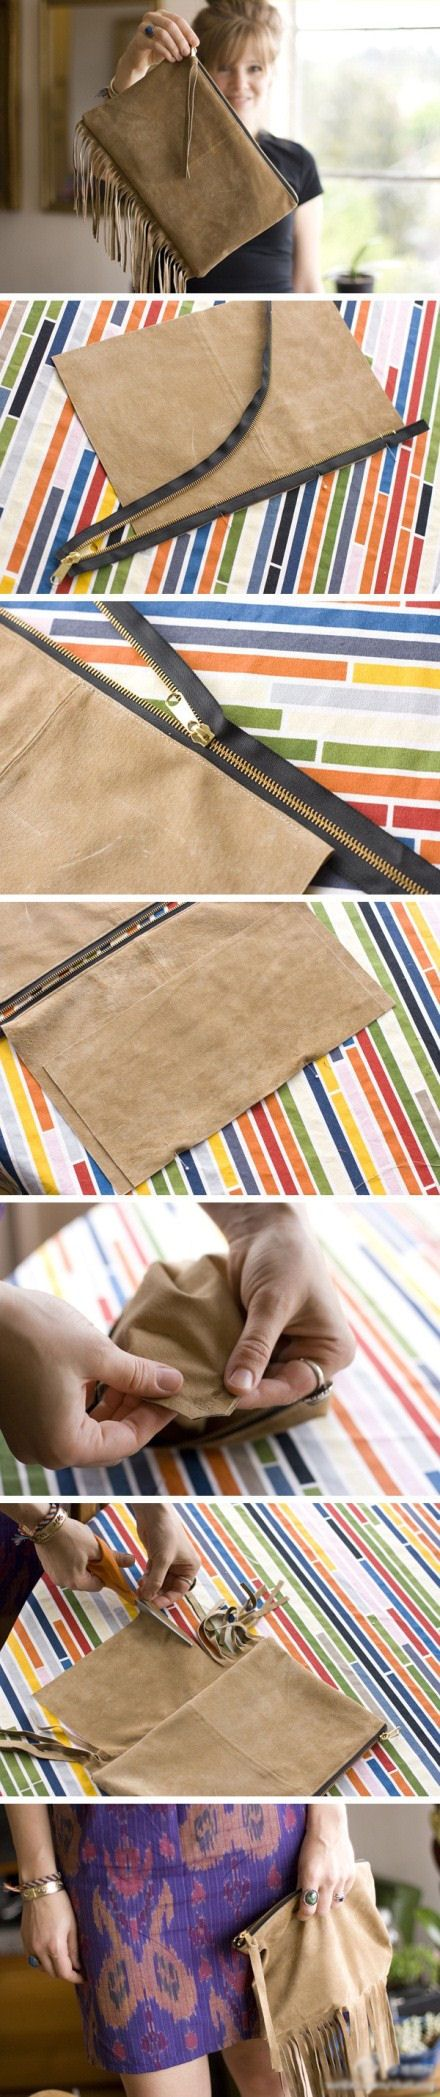 DIY Suede Purse diy crafts home made easy crafts craft idea crafts ideas diy ideas diy crafts diy idea do it yourself diy projects diy craft handmade craft purse diy purse